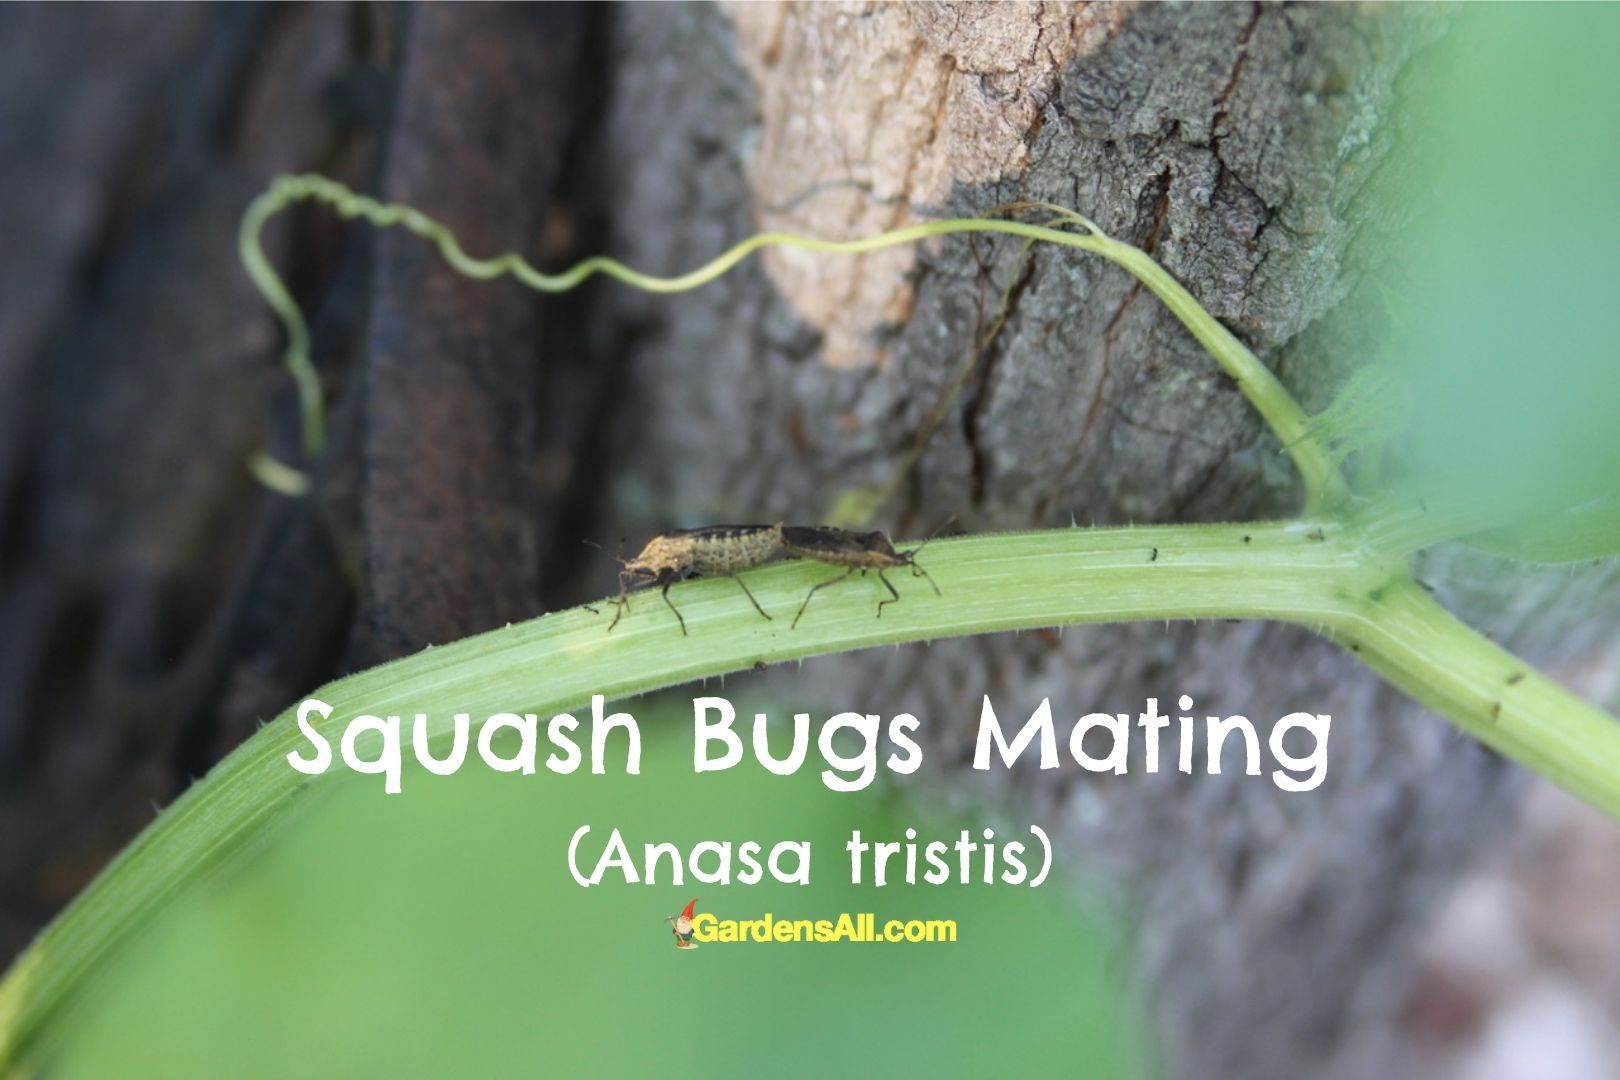 What do Squash bugs look like? Squash bugs mating, image by GardensAll.com #SquashBugs #SquashBugsMating #GardensAll